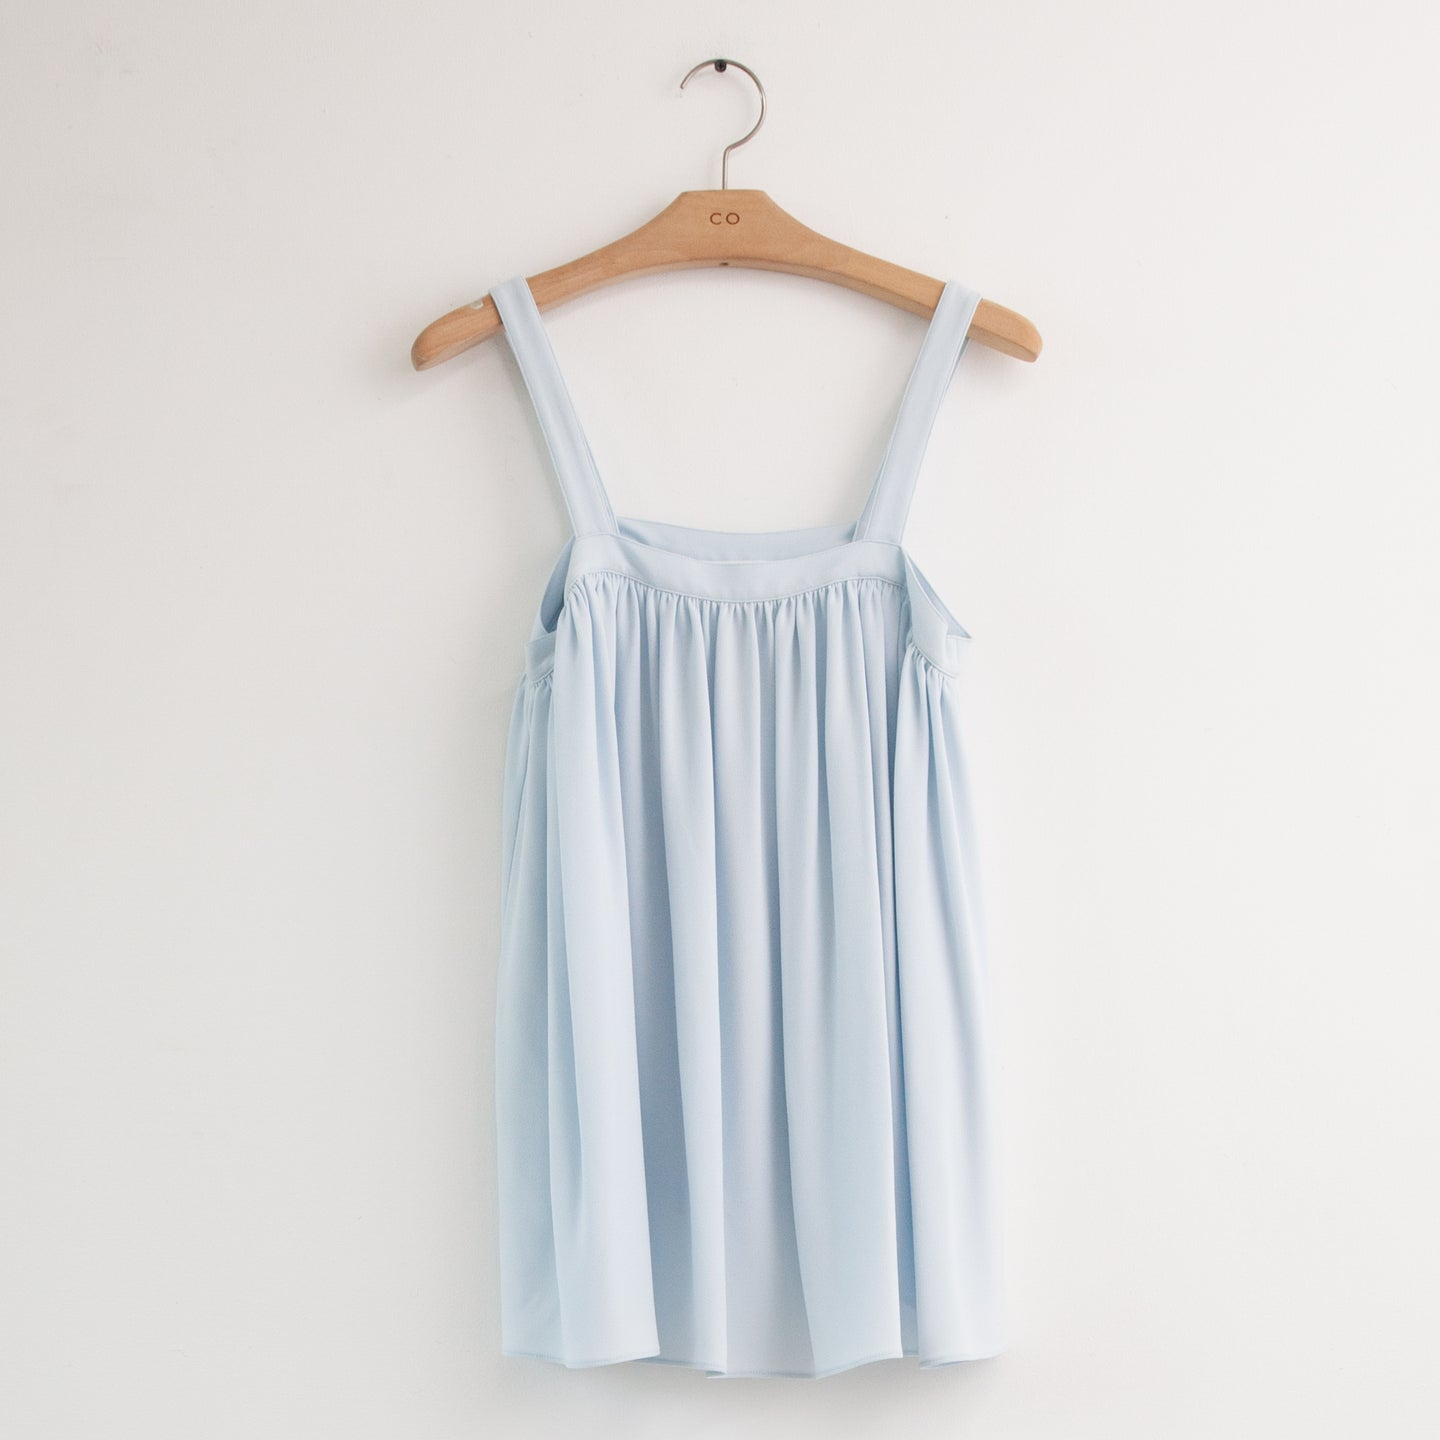 CO - Thin strap square neck swing blouse in light blue cotton silk blend